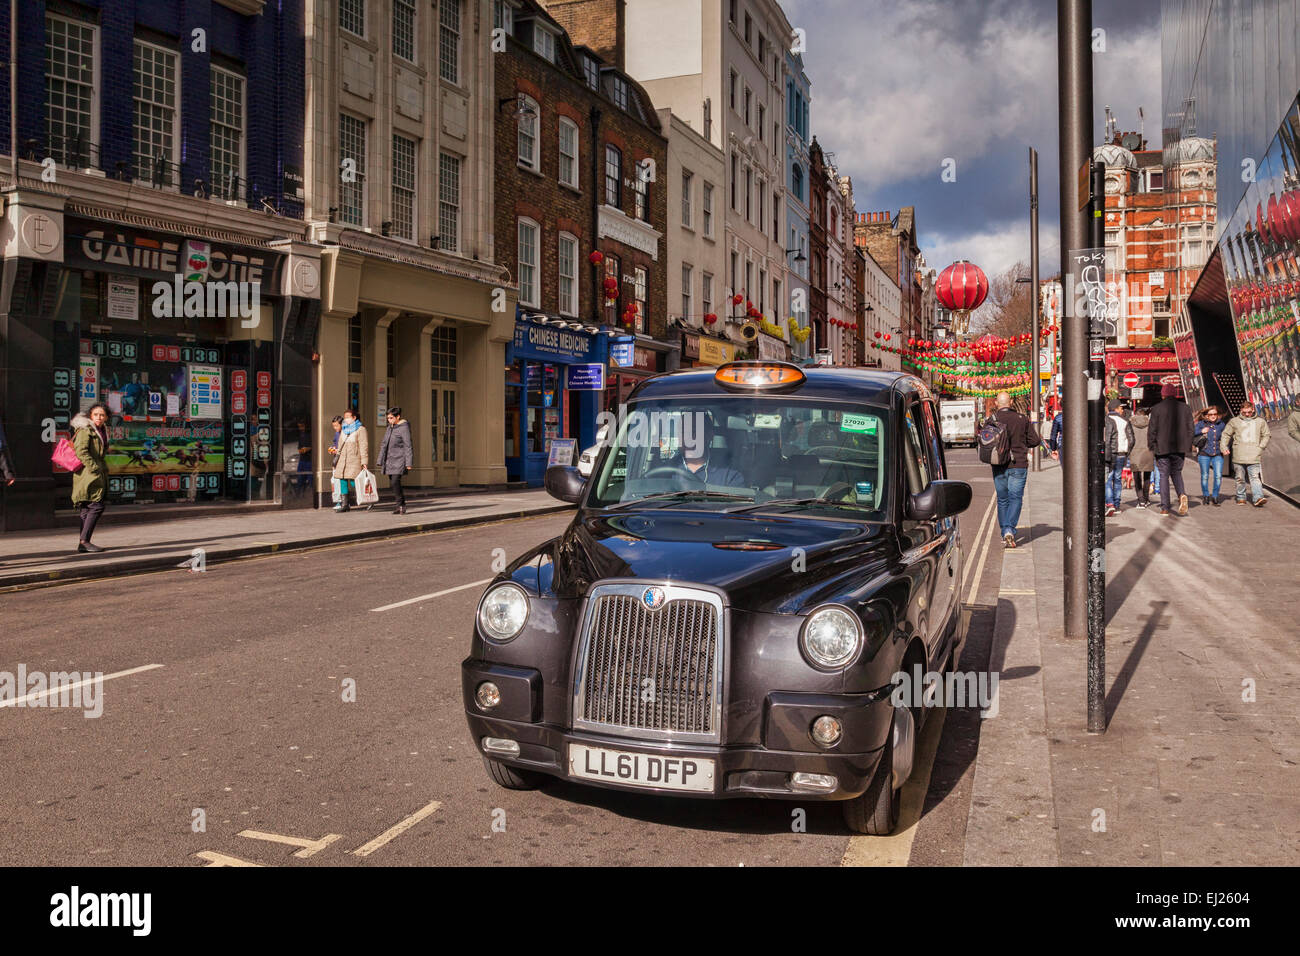 London taxi cab, Chinatown, Londres, Angleterre. Photo Stock